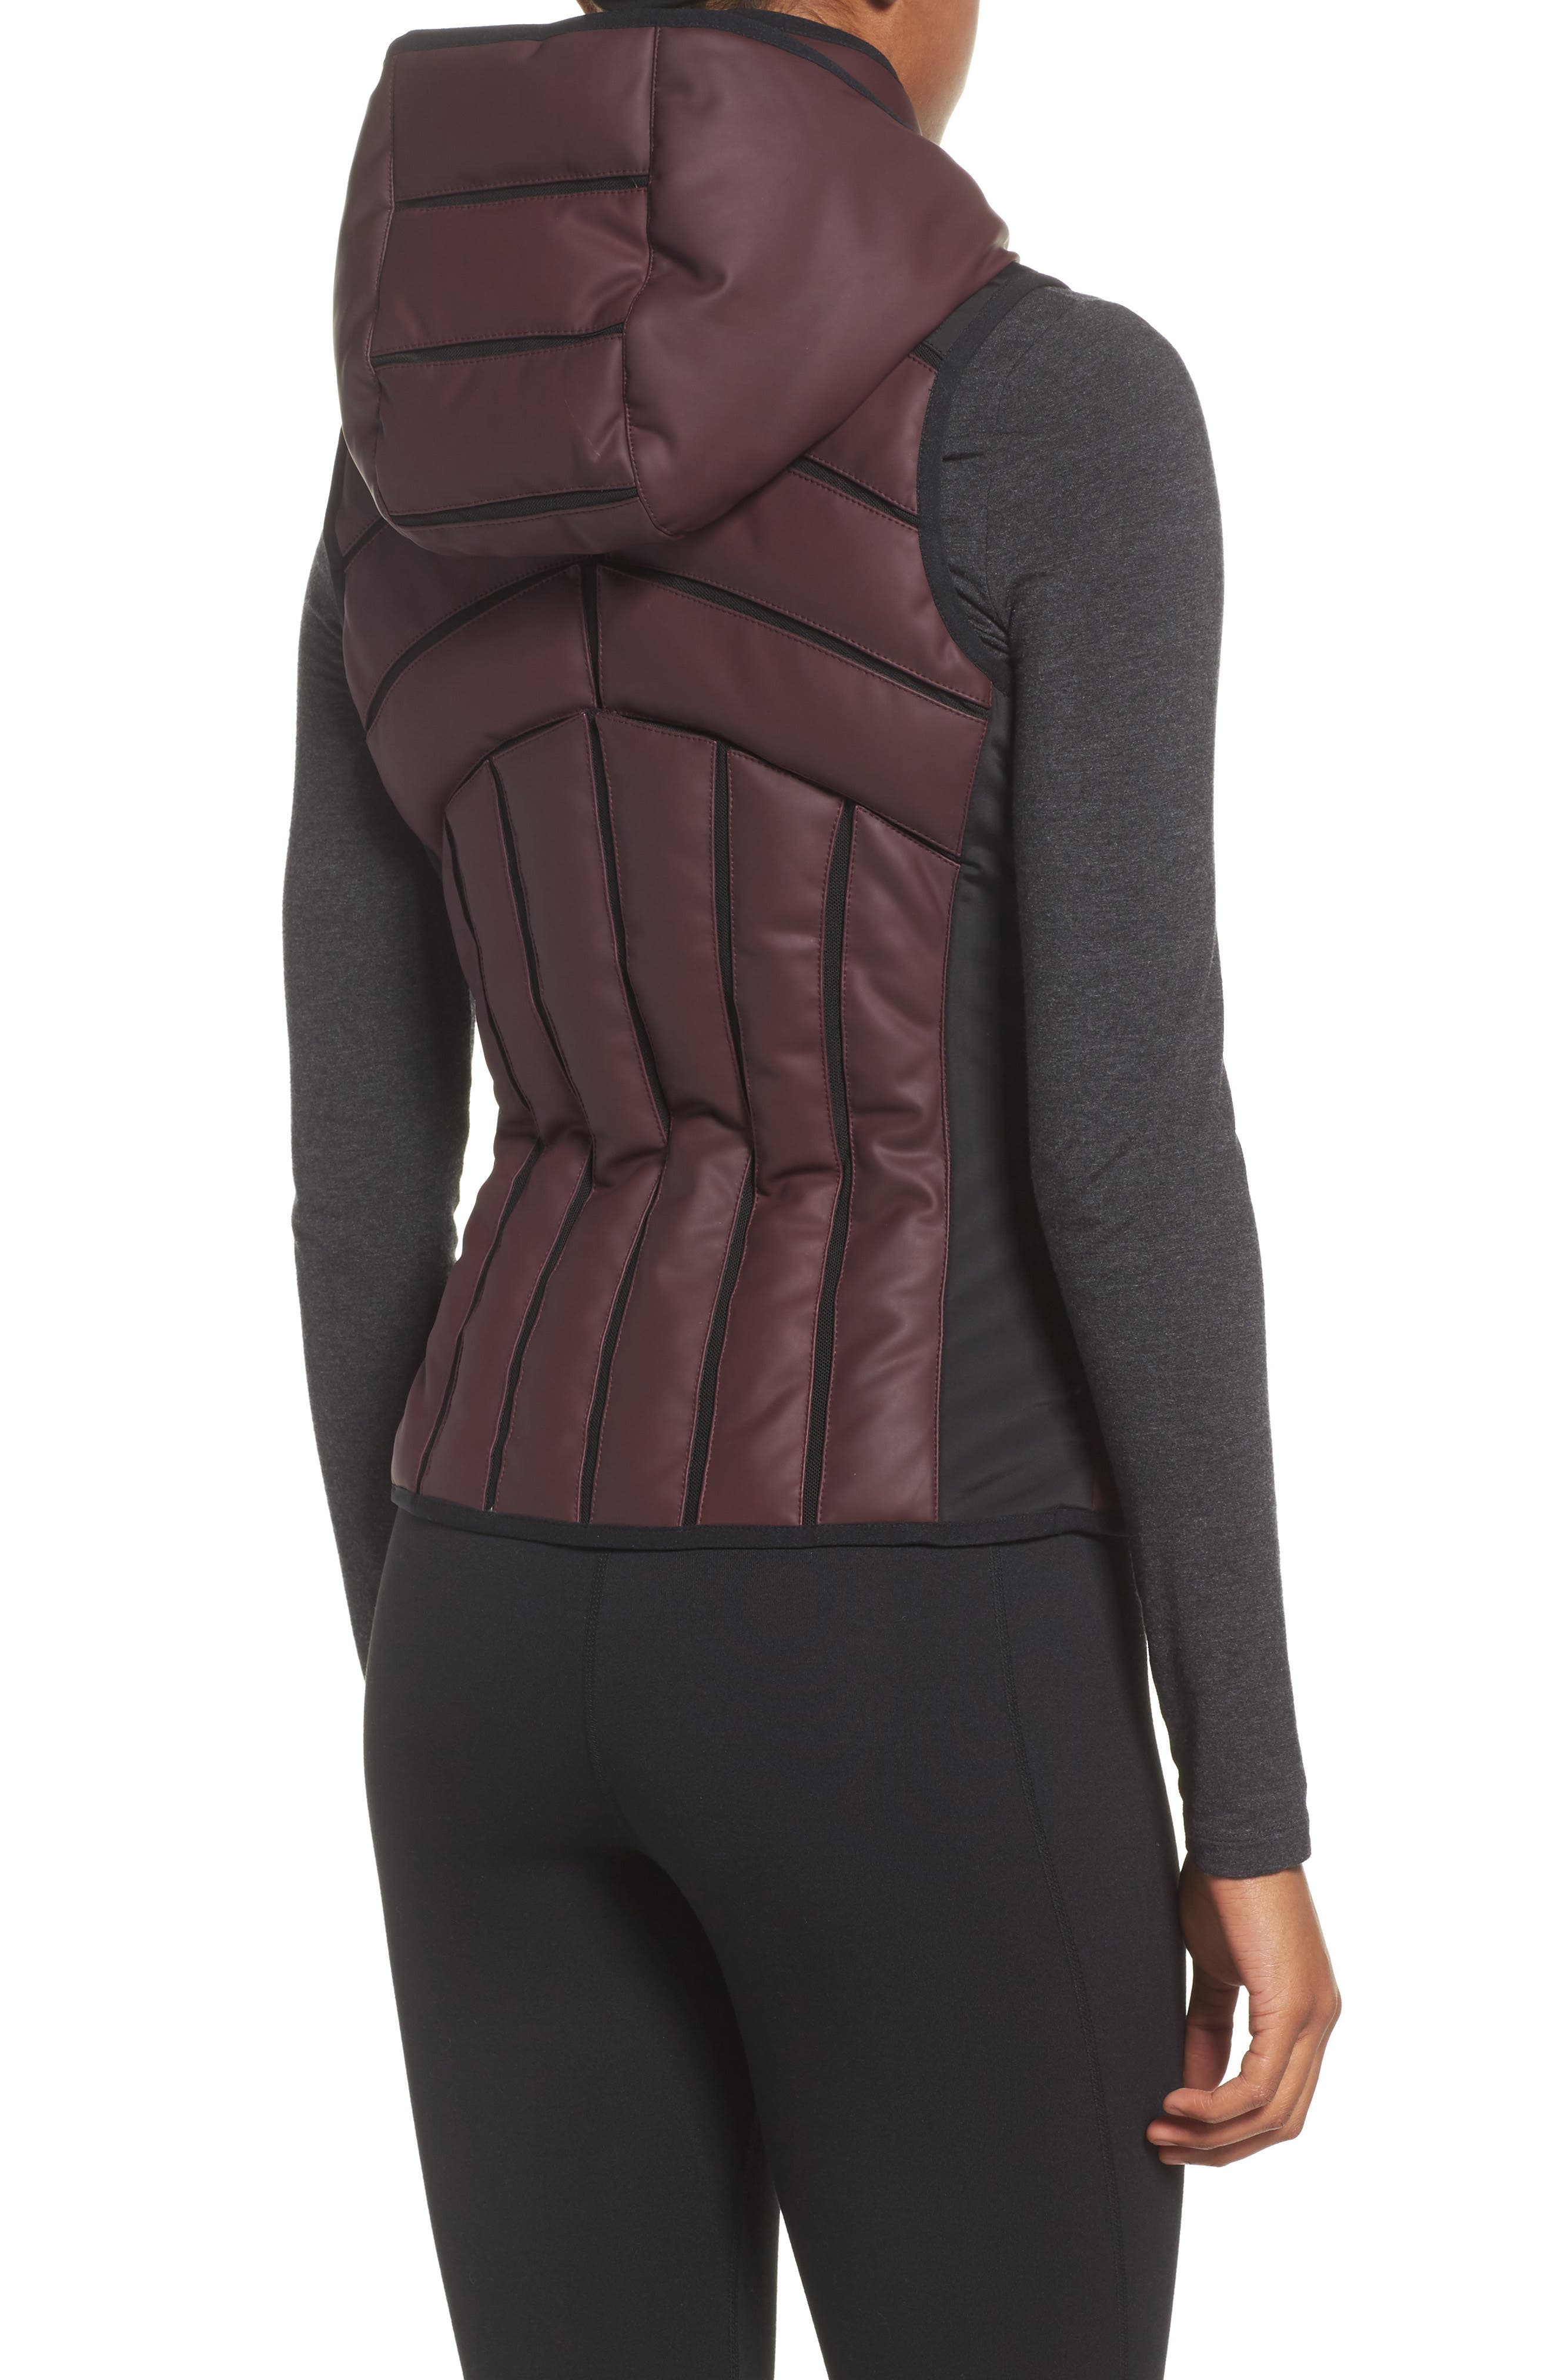 Aura Mesh Inset Vest,                             Alternate thumbnail 2, color,                             Nightshade